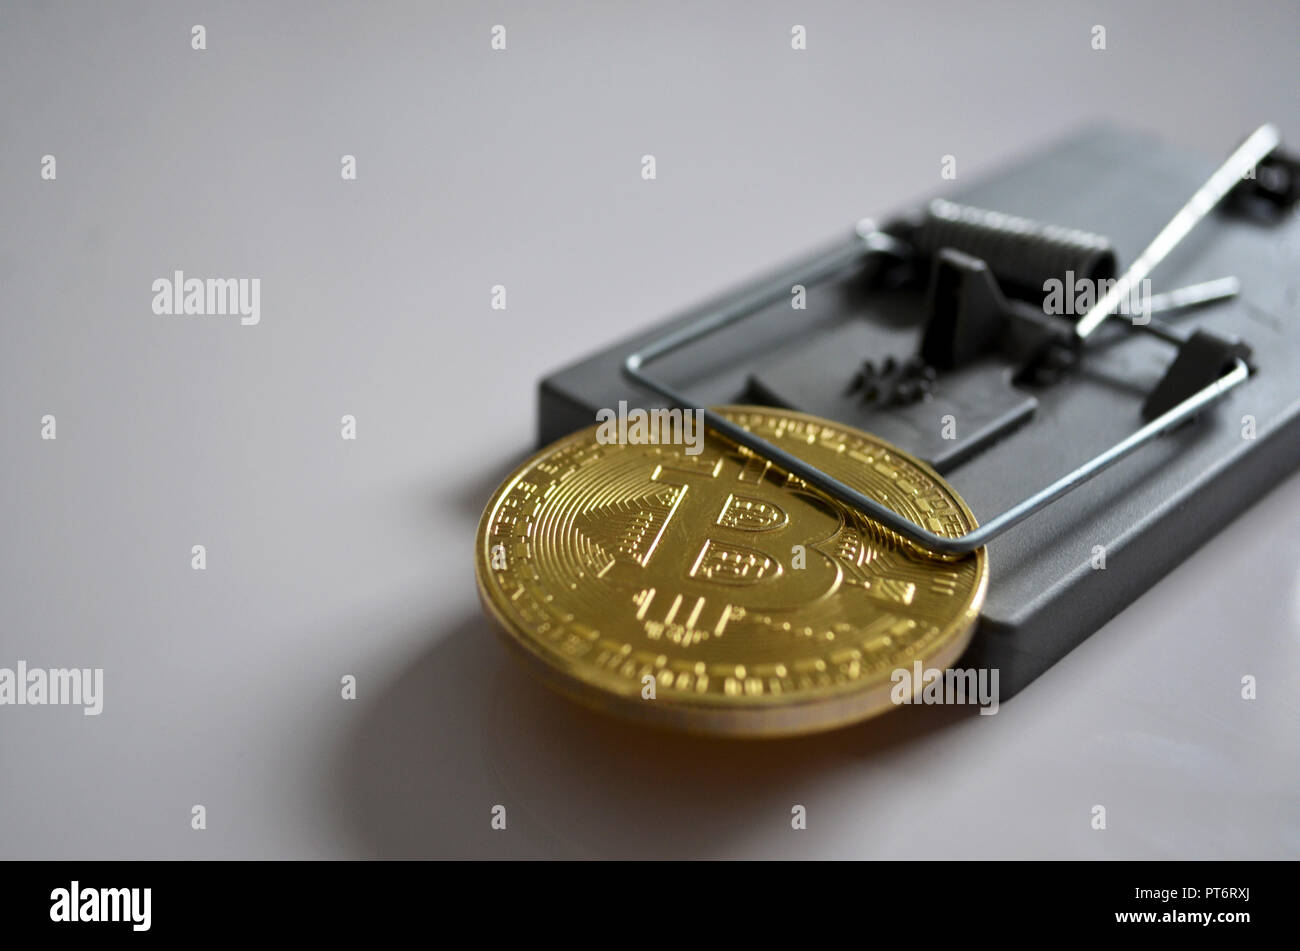 Bitcoin caught in a mouse trap - Stock Image